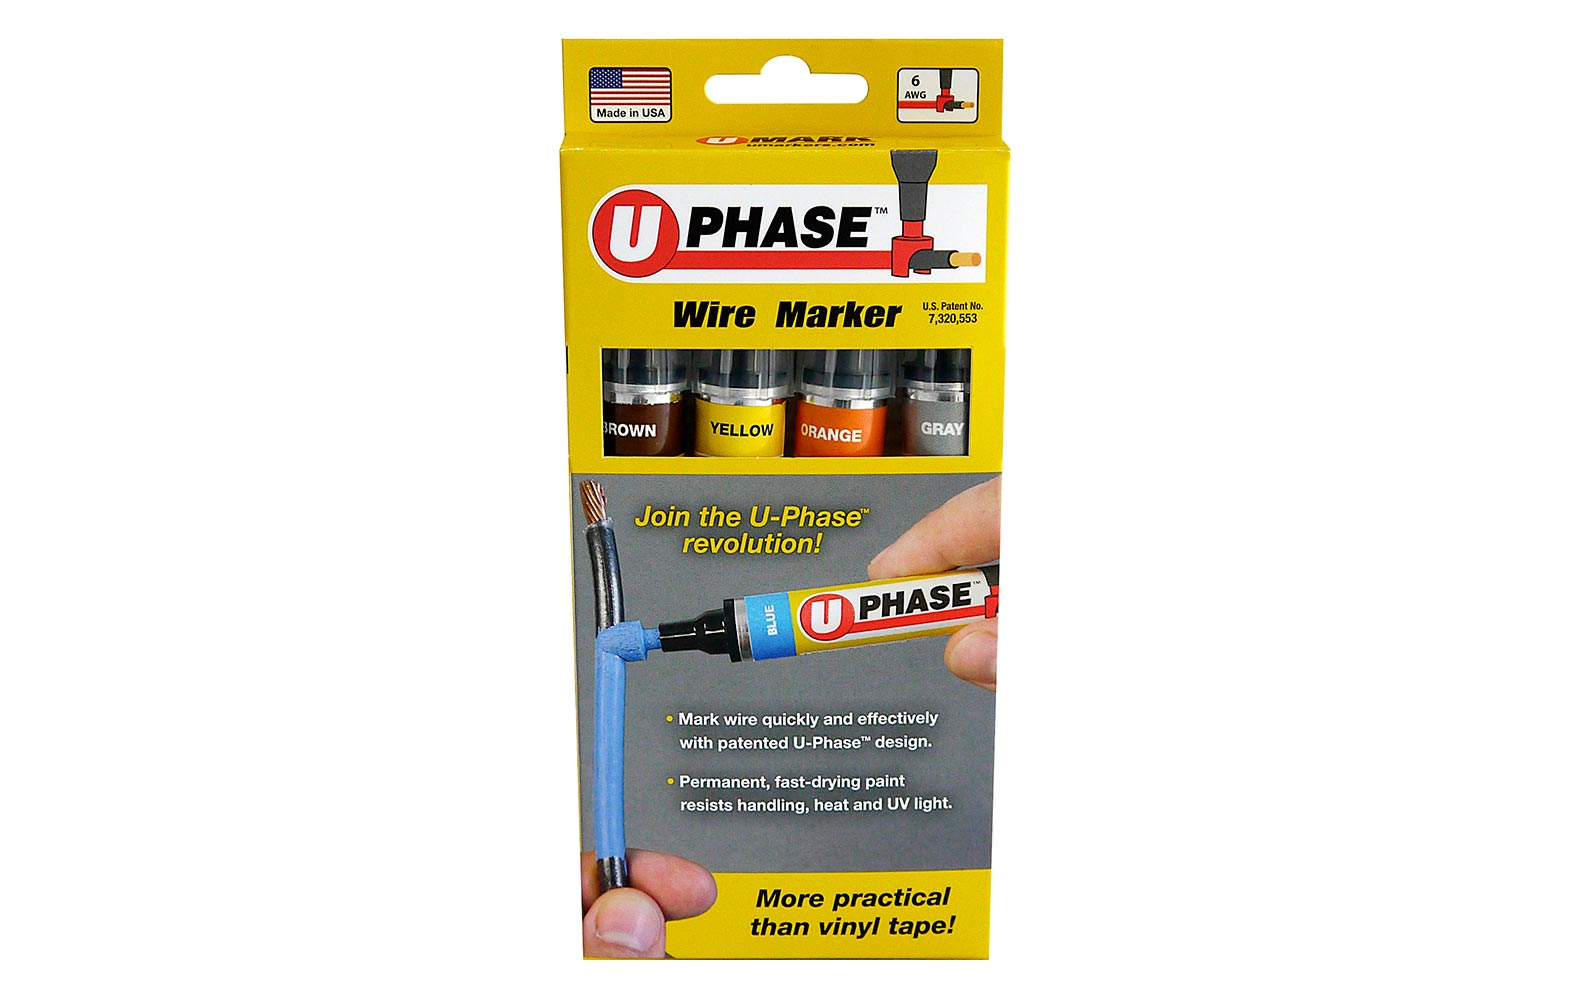 U Phase Wire Marker